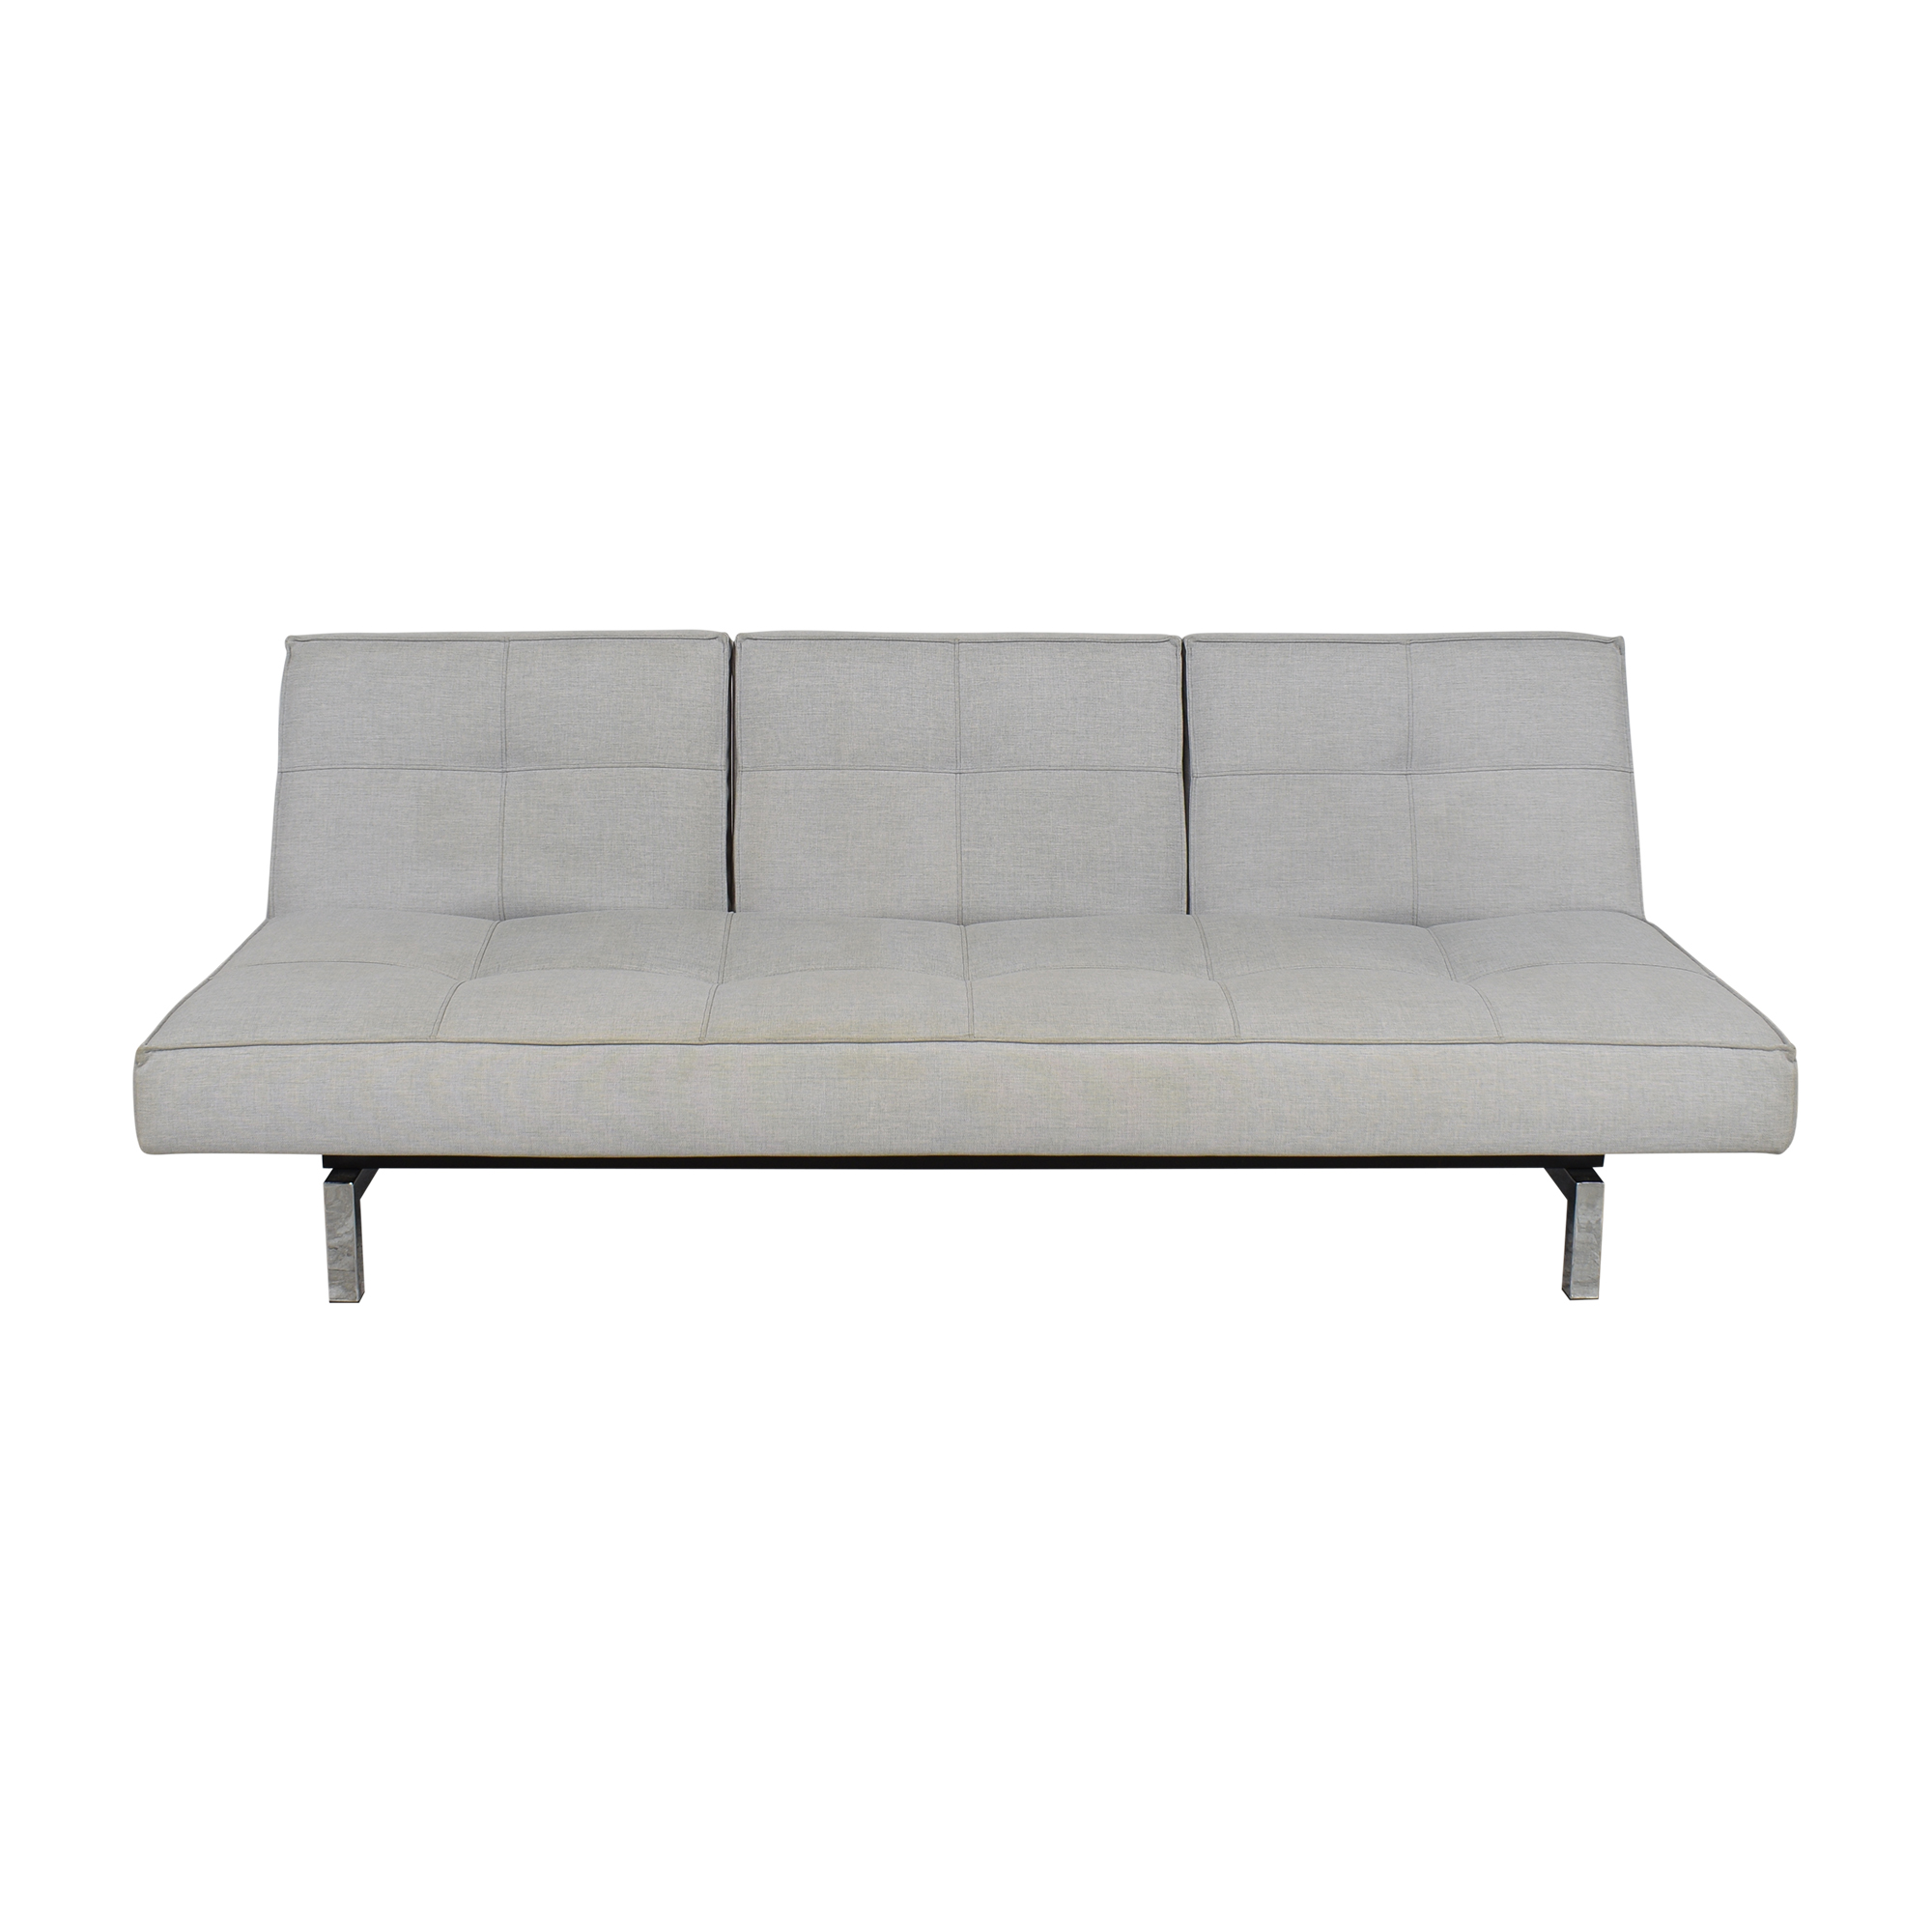 shop Innovation Living Convertible Tufted Sleeper Sofa Innovation Living Sofas